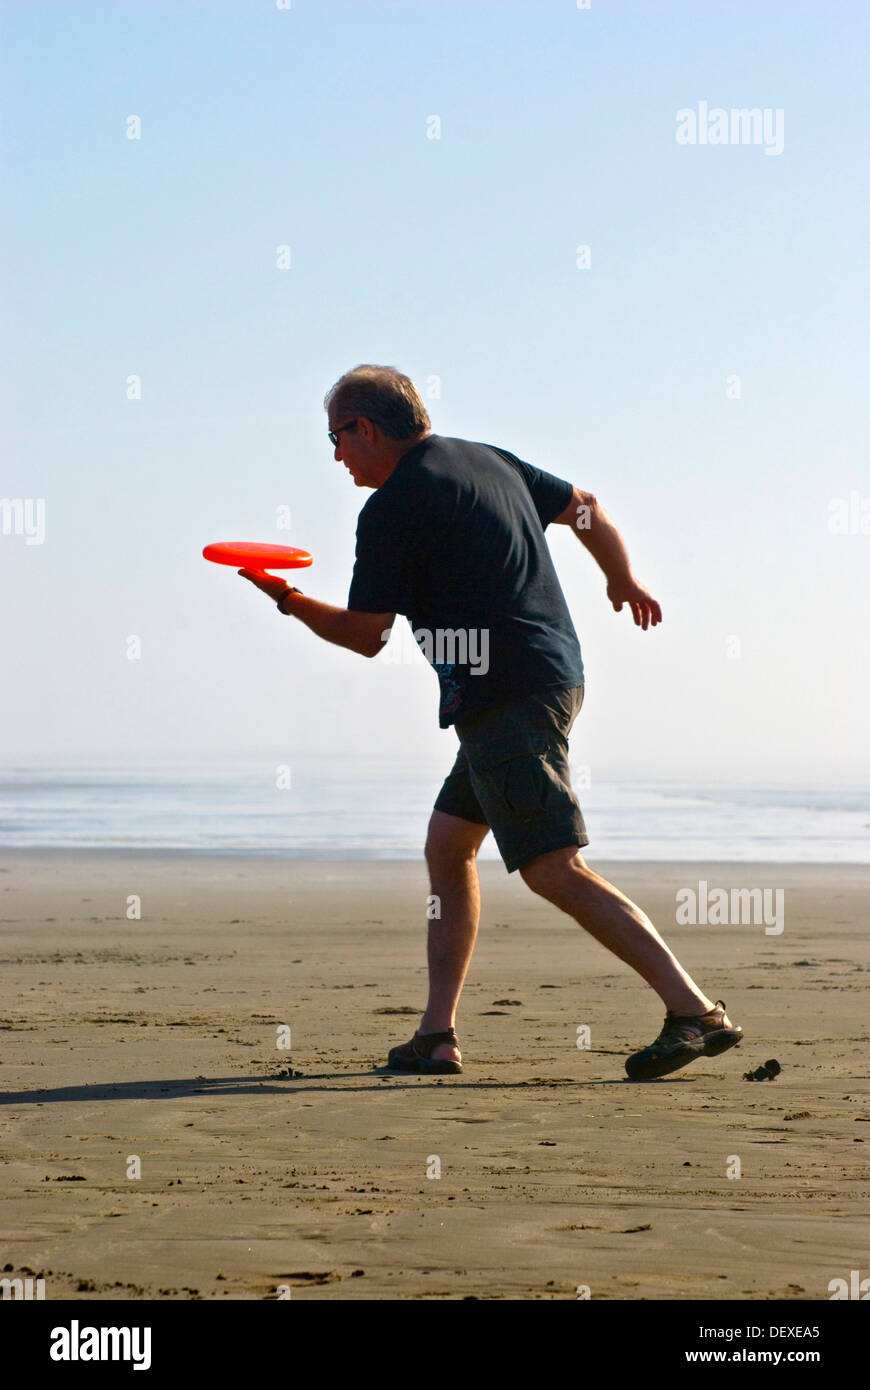 Man playing freestyle frisbee on California beach - Stock Image